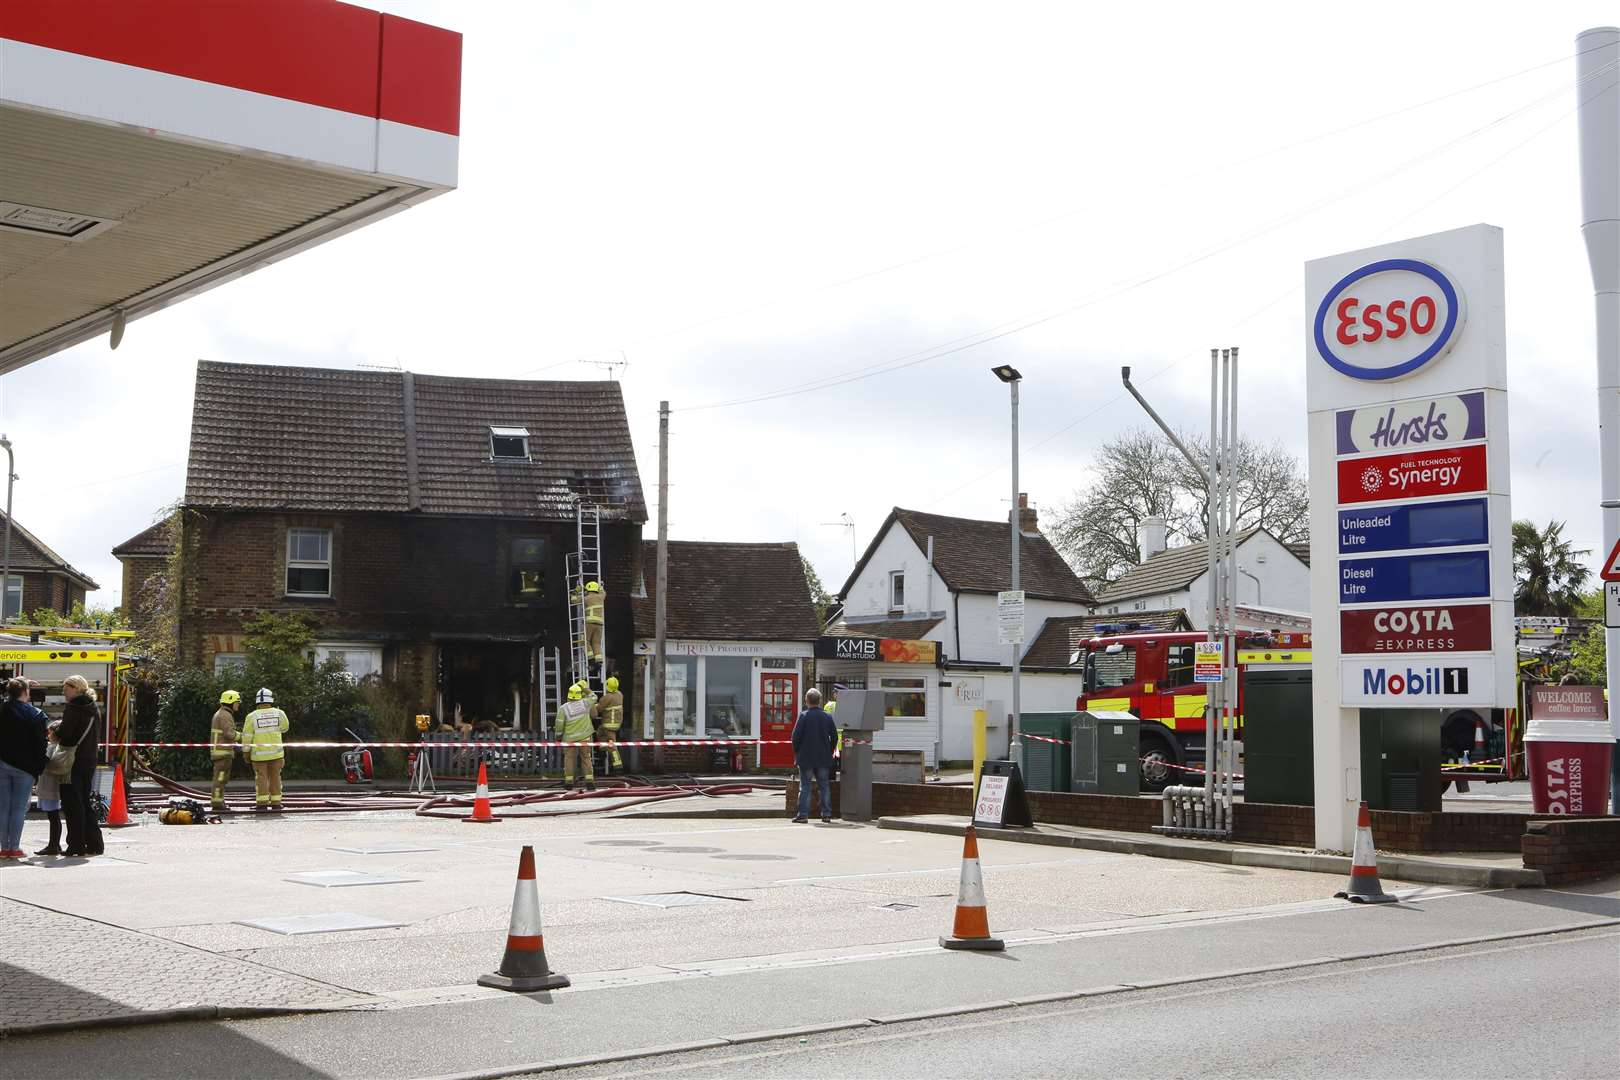 The fire erupted just metres from a petrol station